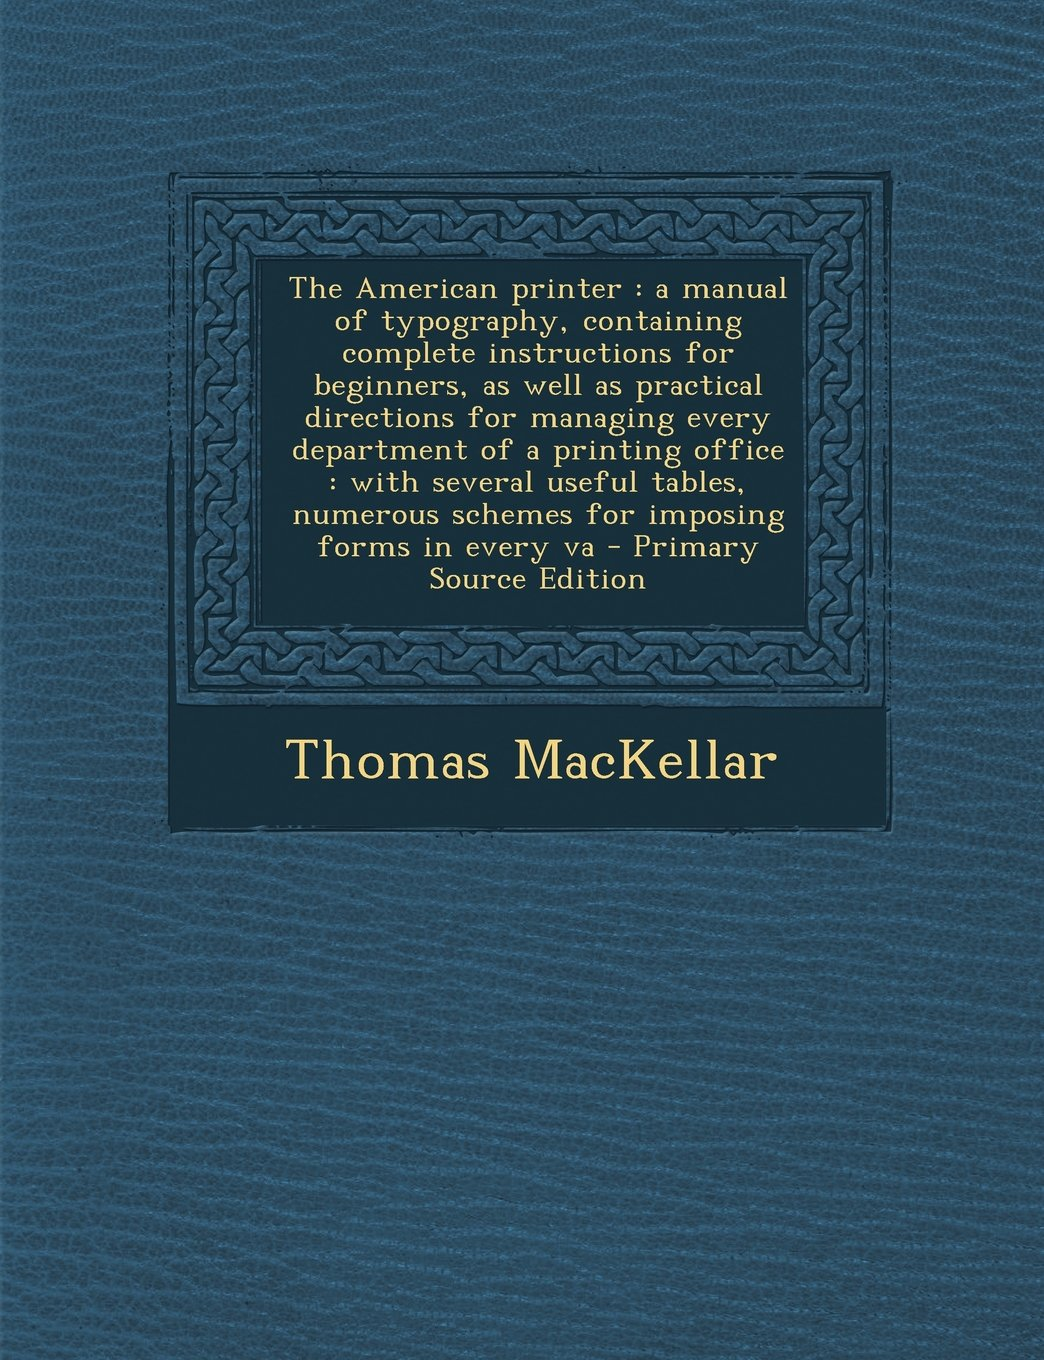 The American Printer: A Manual of Typography, Containing Complete Instructions for Beginners, as Well as Practical Directions for Managing E pdf epub